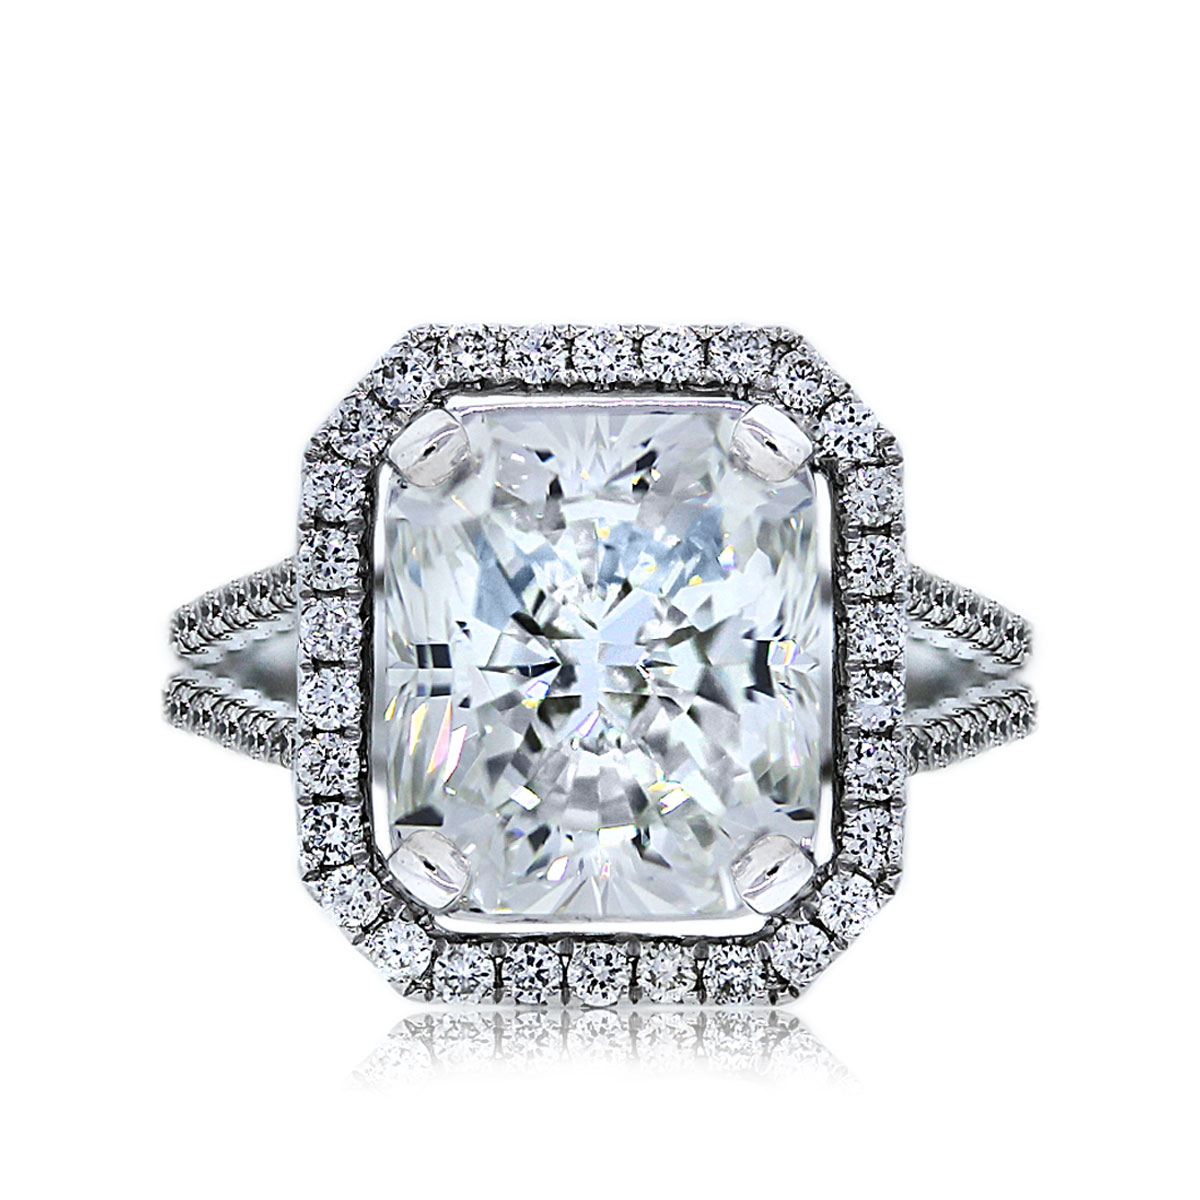 You Are Viewing This 504ct Radiant Cut Diamond Ring!